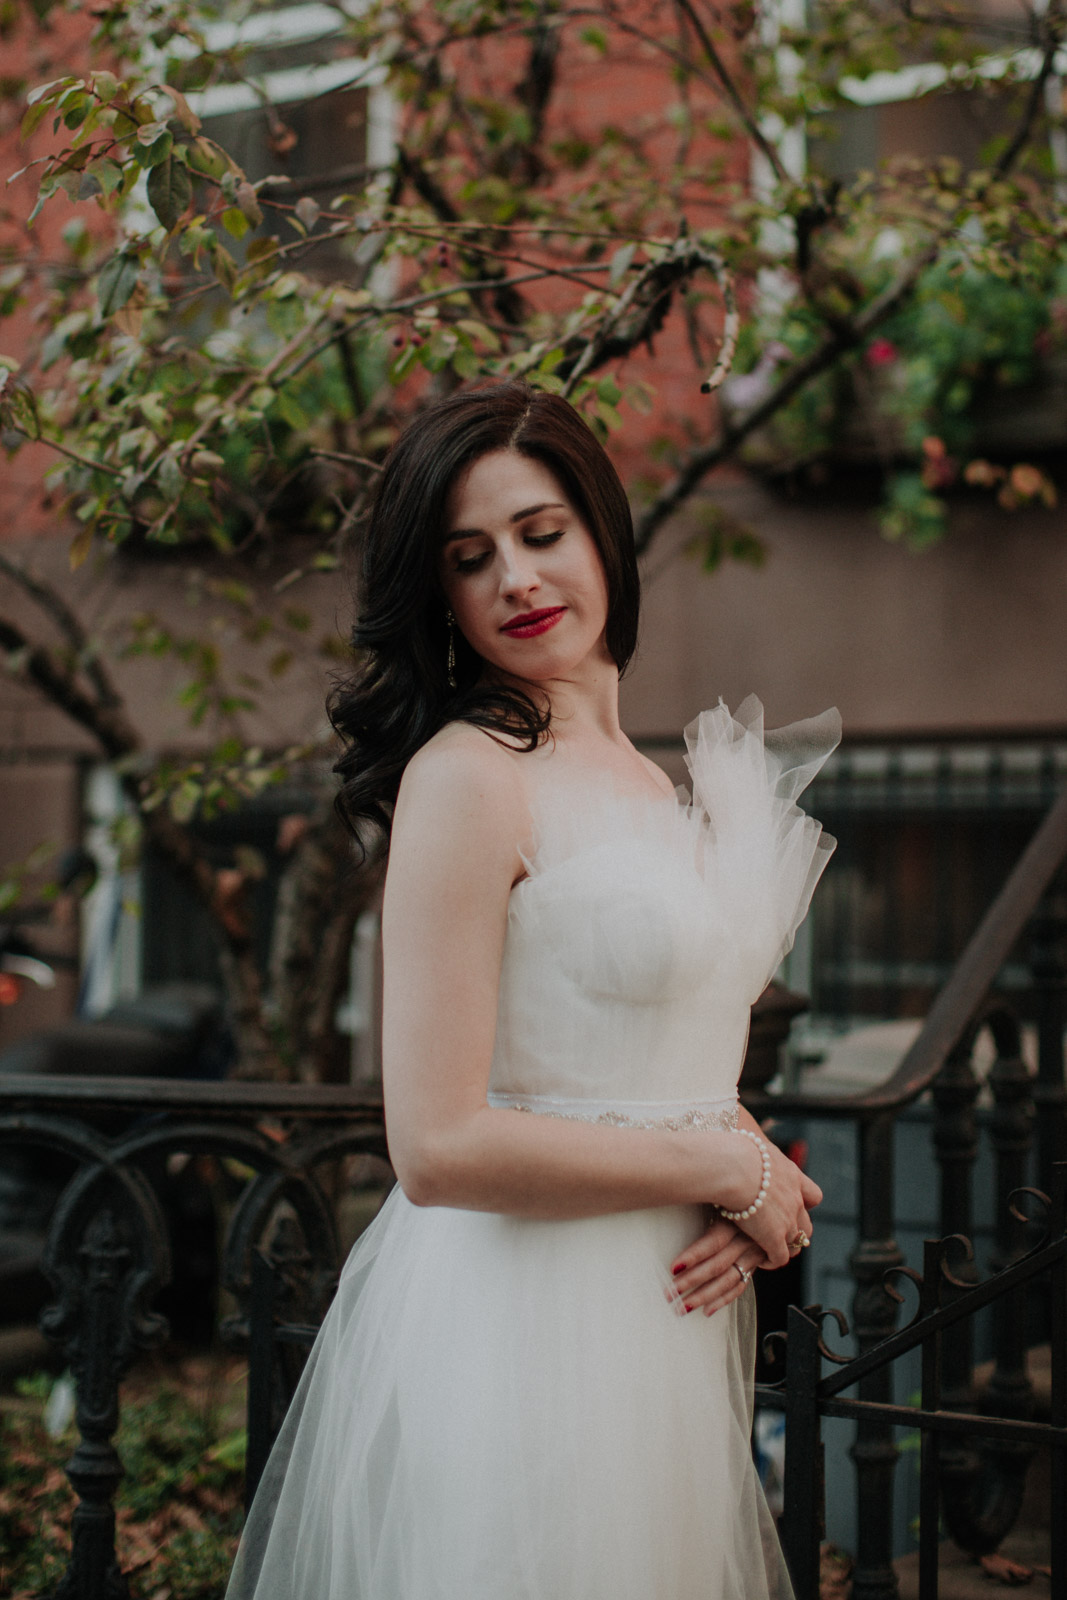 Carol Hannah Bridal Custom Gown brooklyn frankies-457-44.jpg